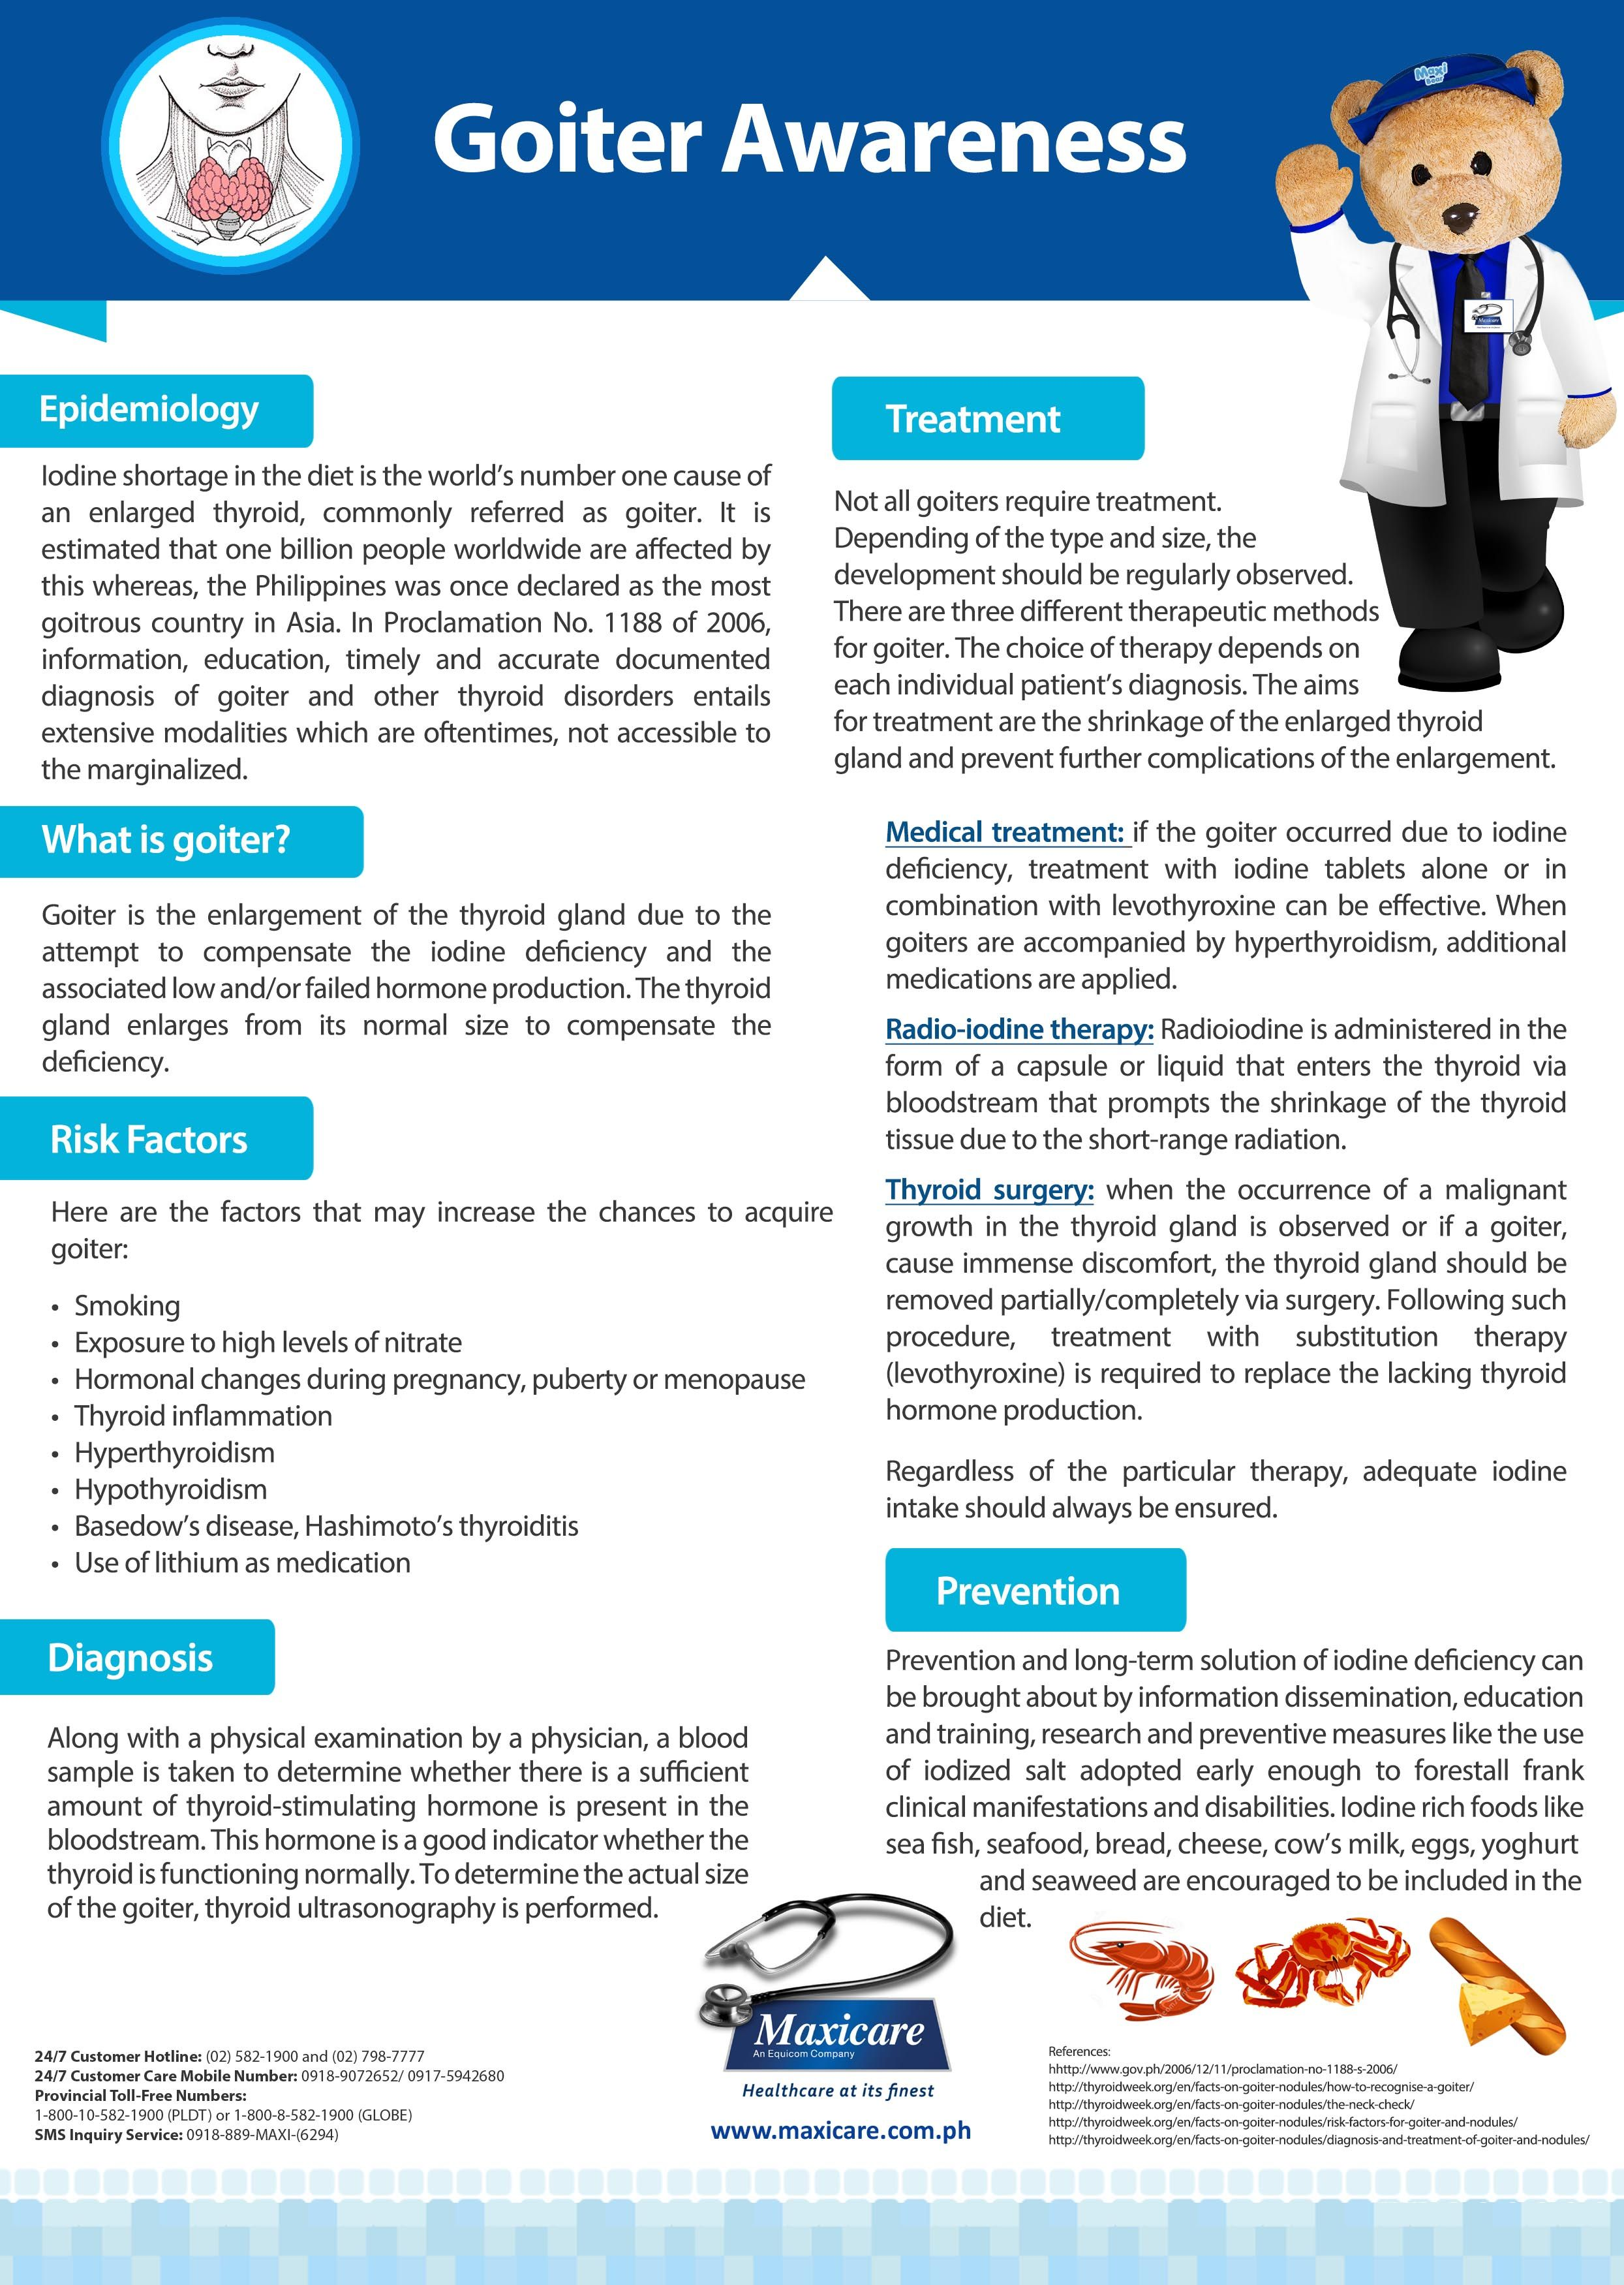 Goiter maxicare infographic health is wealth